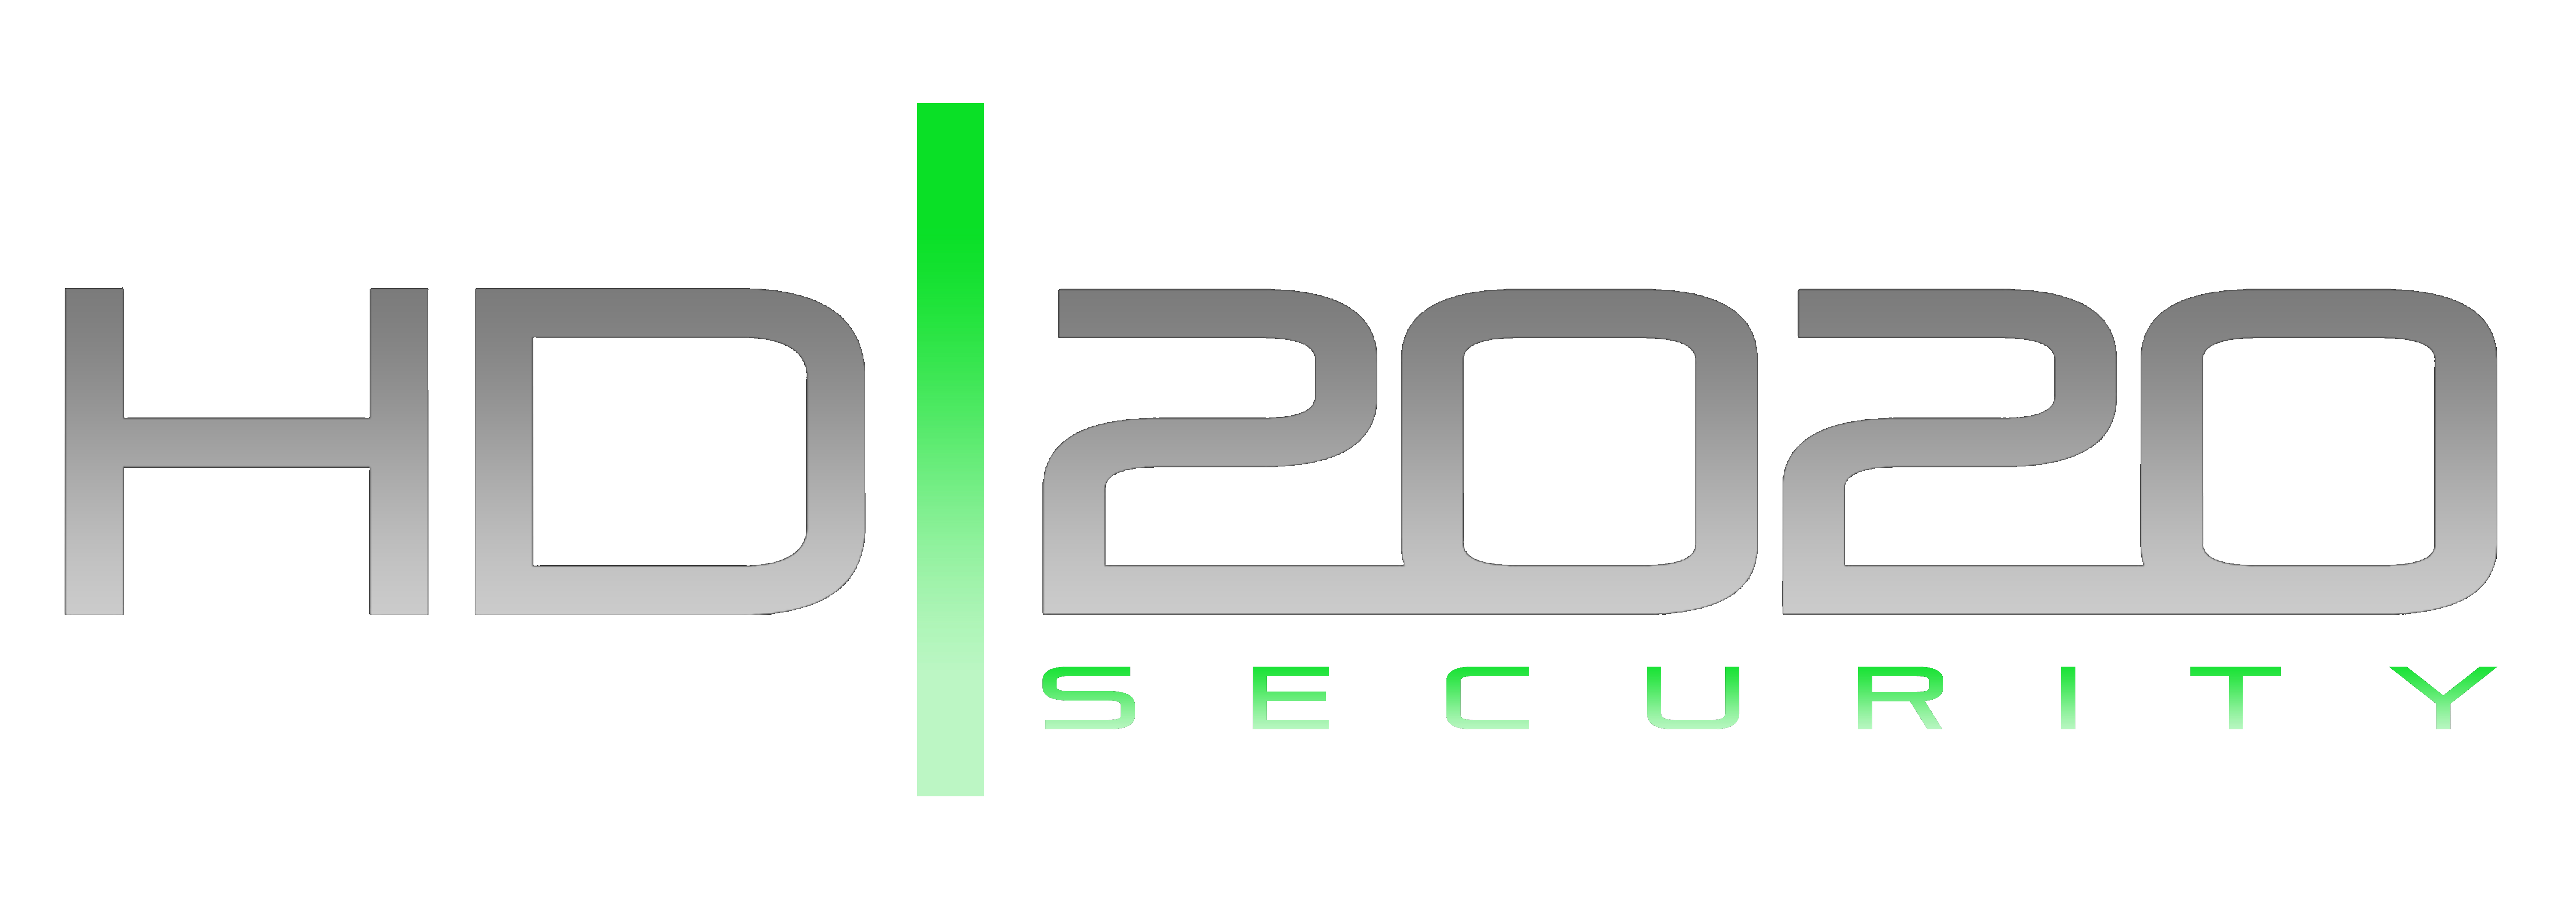 Palm Harbor Security Cameras & CCTV Surveillance Installers